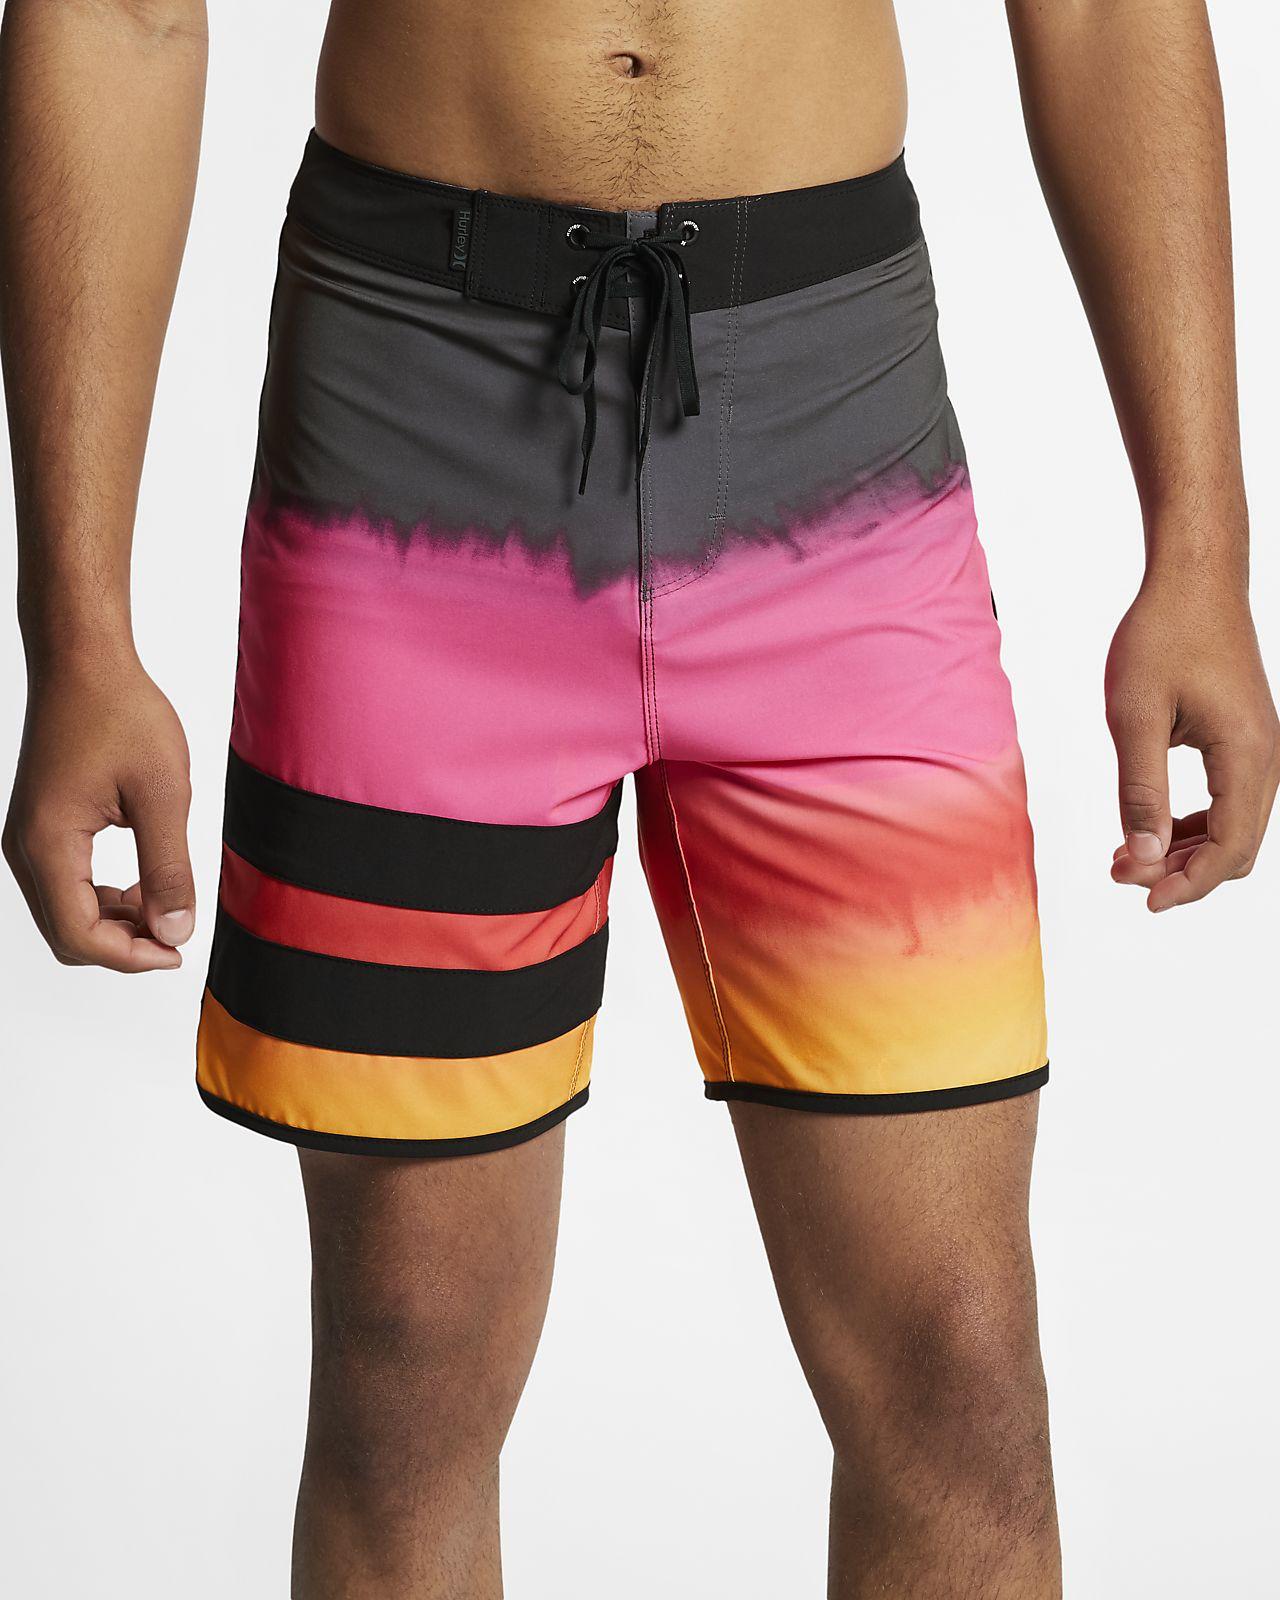 Hurley Phantom Block Party Fever Men's 46cm approx. Boardshorts